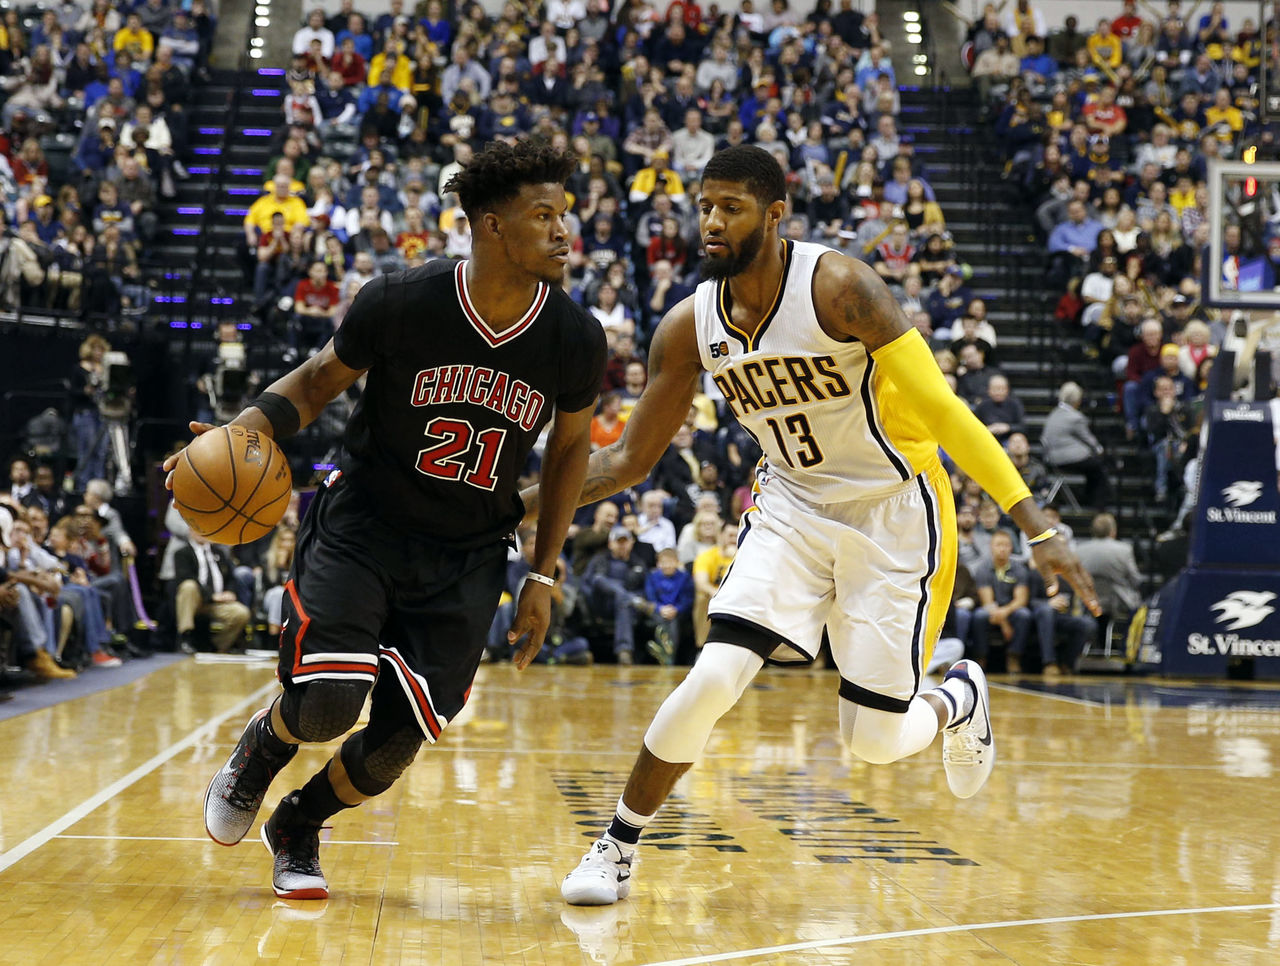 Cropped 2016 12 30t235933z 453630774 nocid rtrmadp 3 nba chicago bulls at indiana pacers